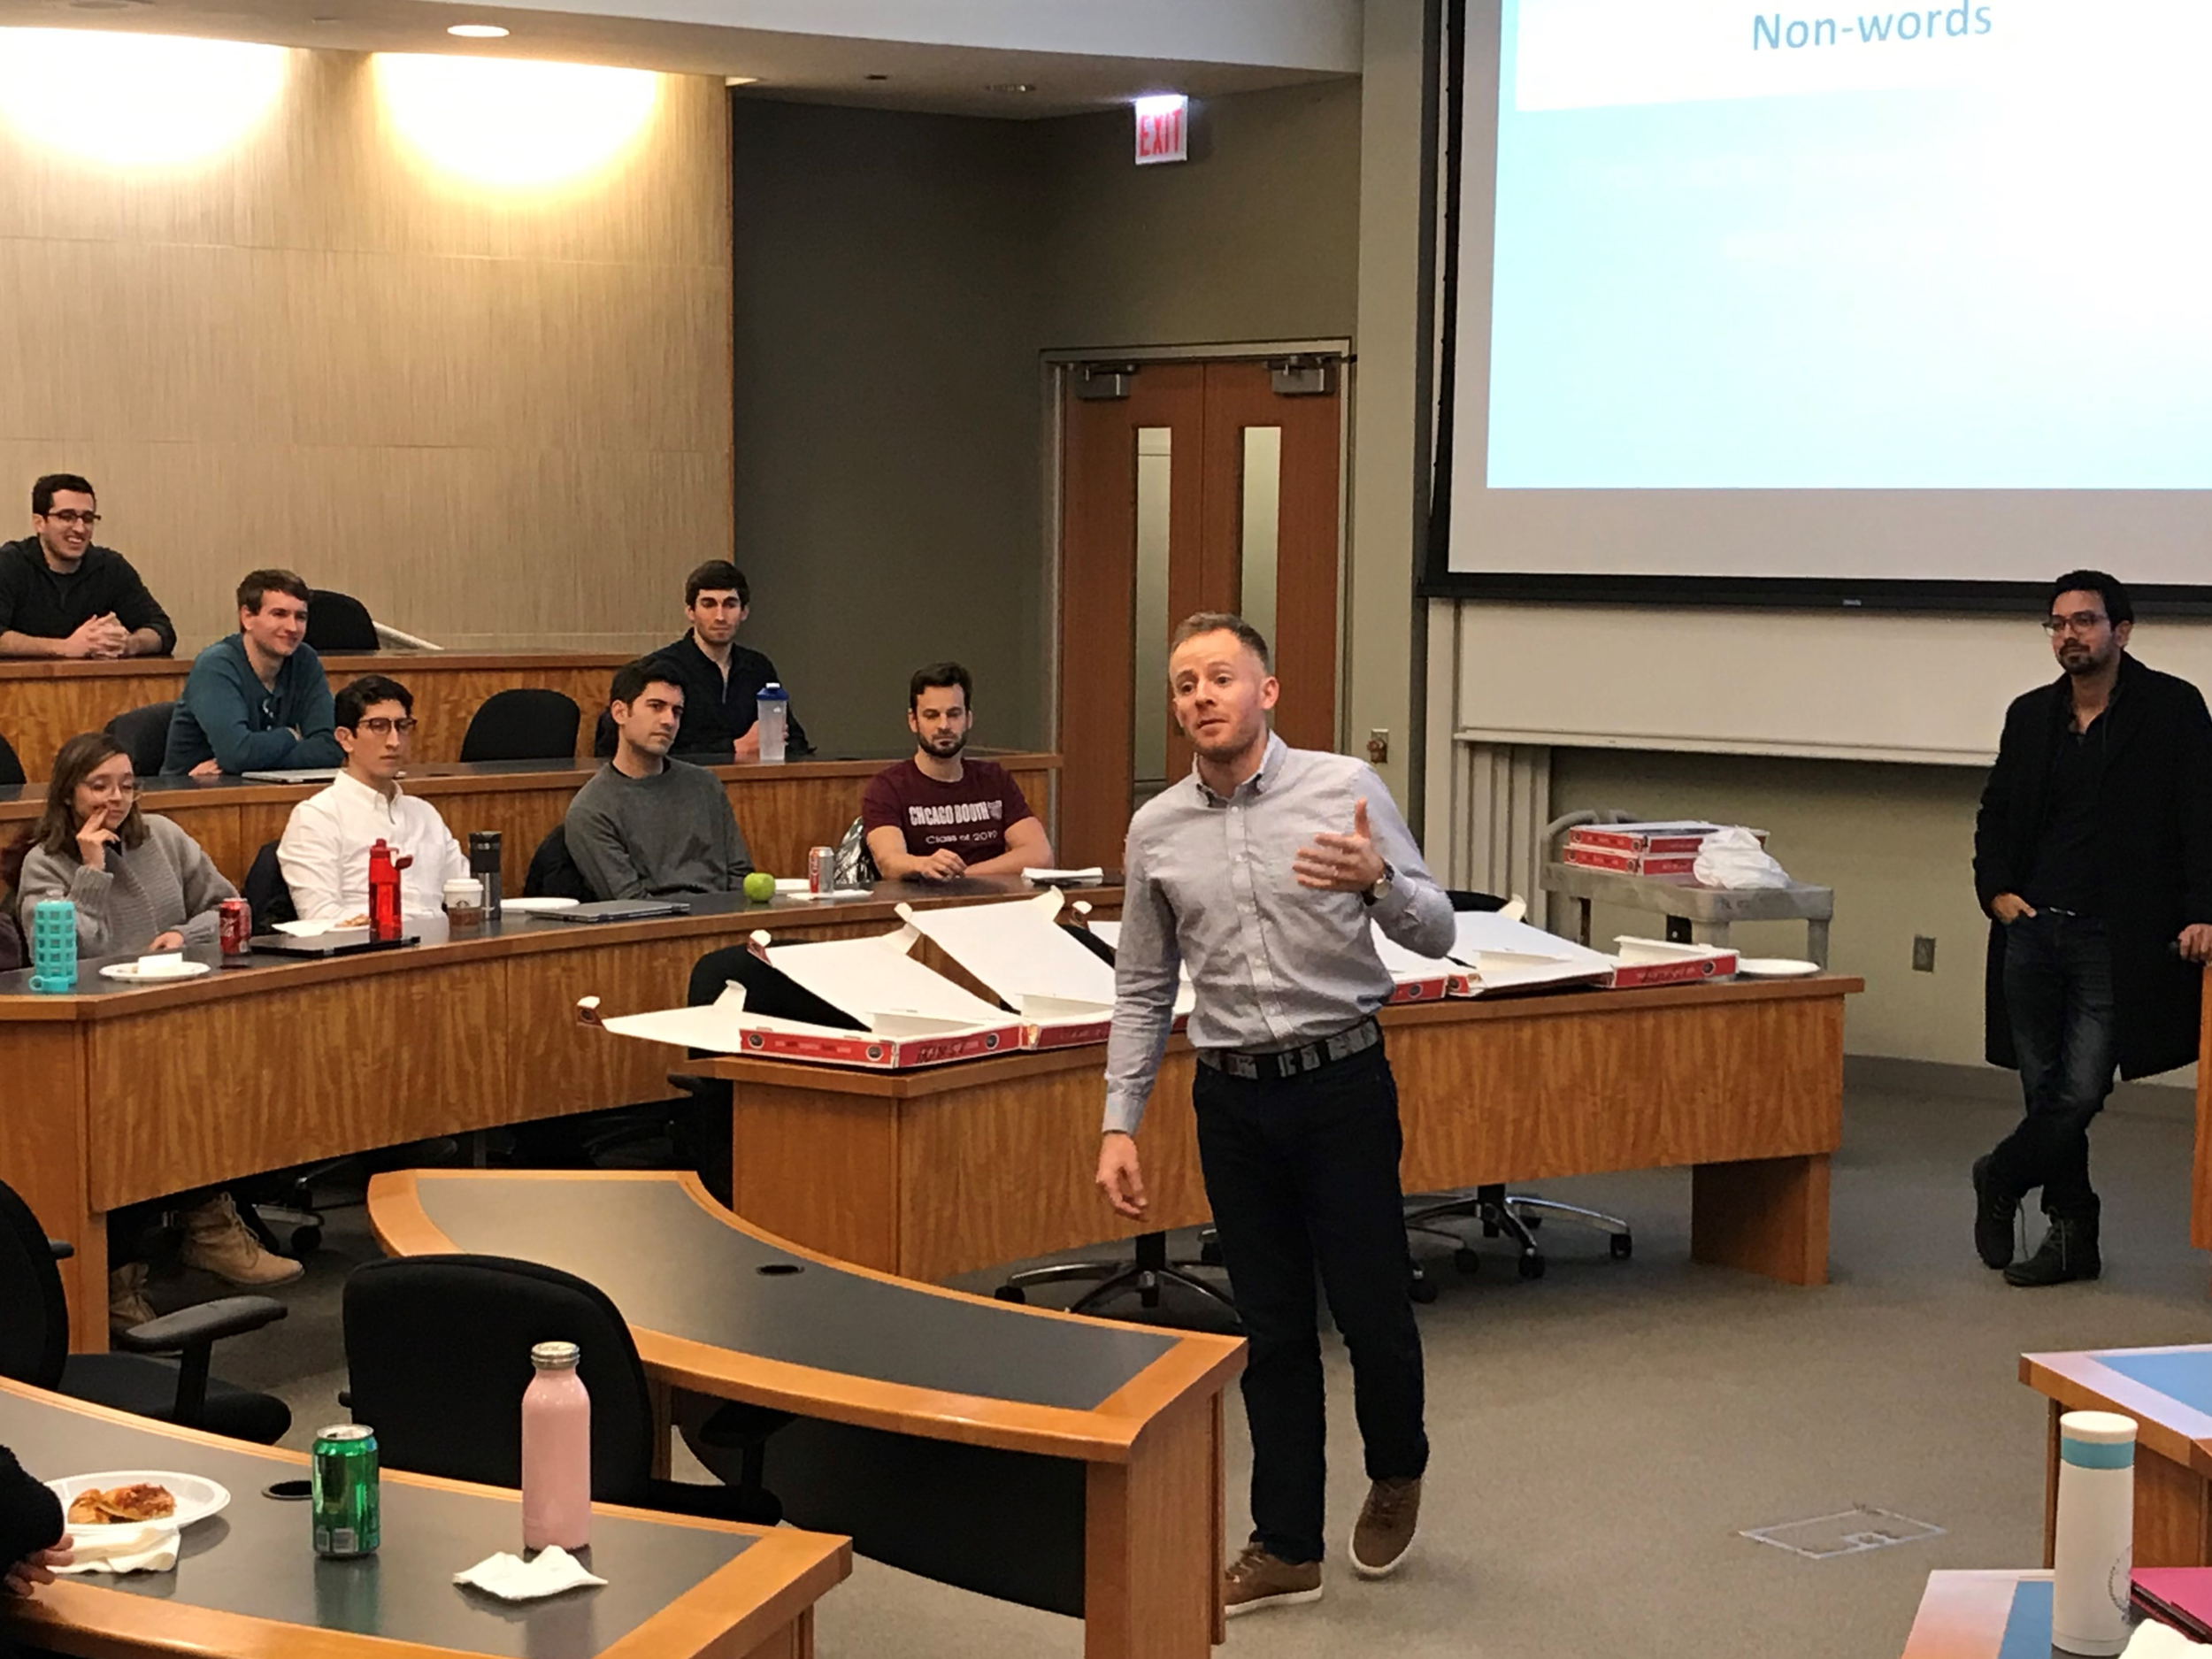 Thomas Egbert ('19) practices speaking without using filler words